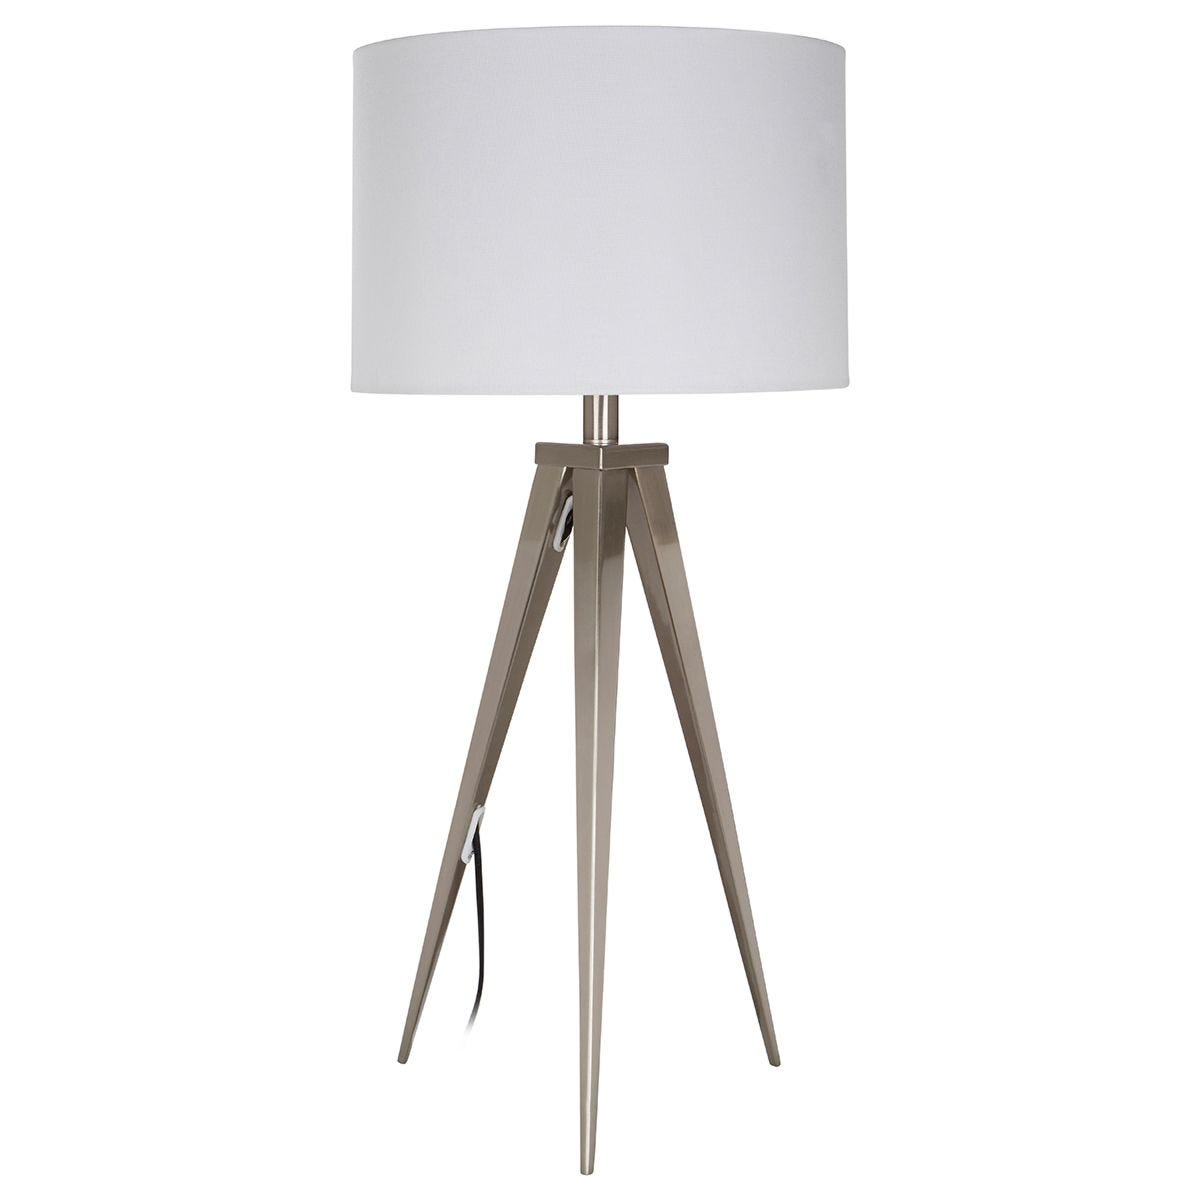 Premier Housewares Livia Table Lamp with Metal Tripod Frame & White Fabric Shade